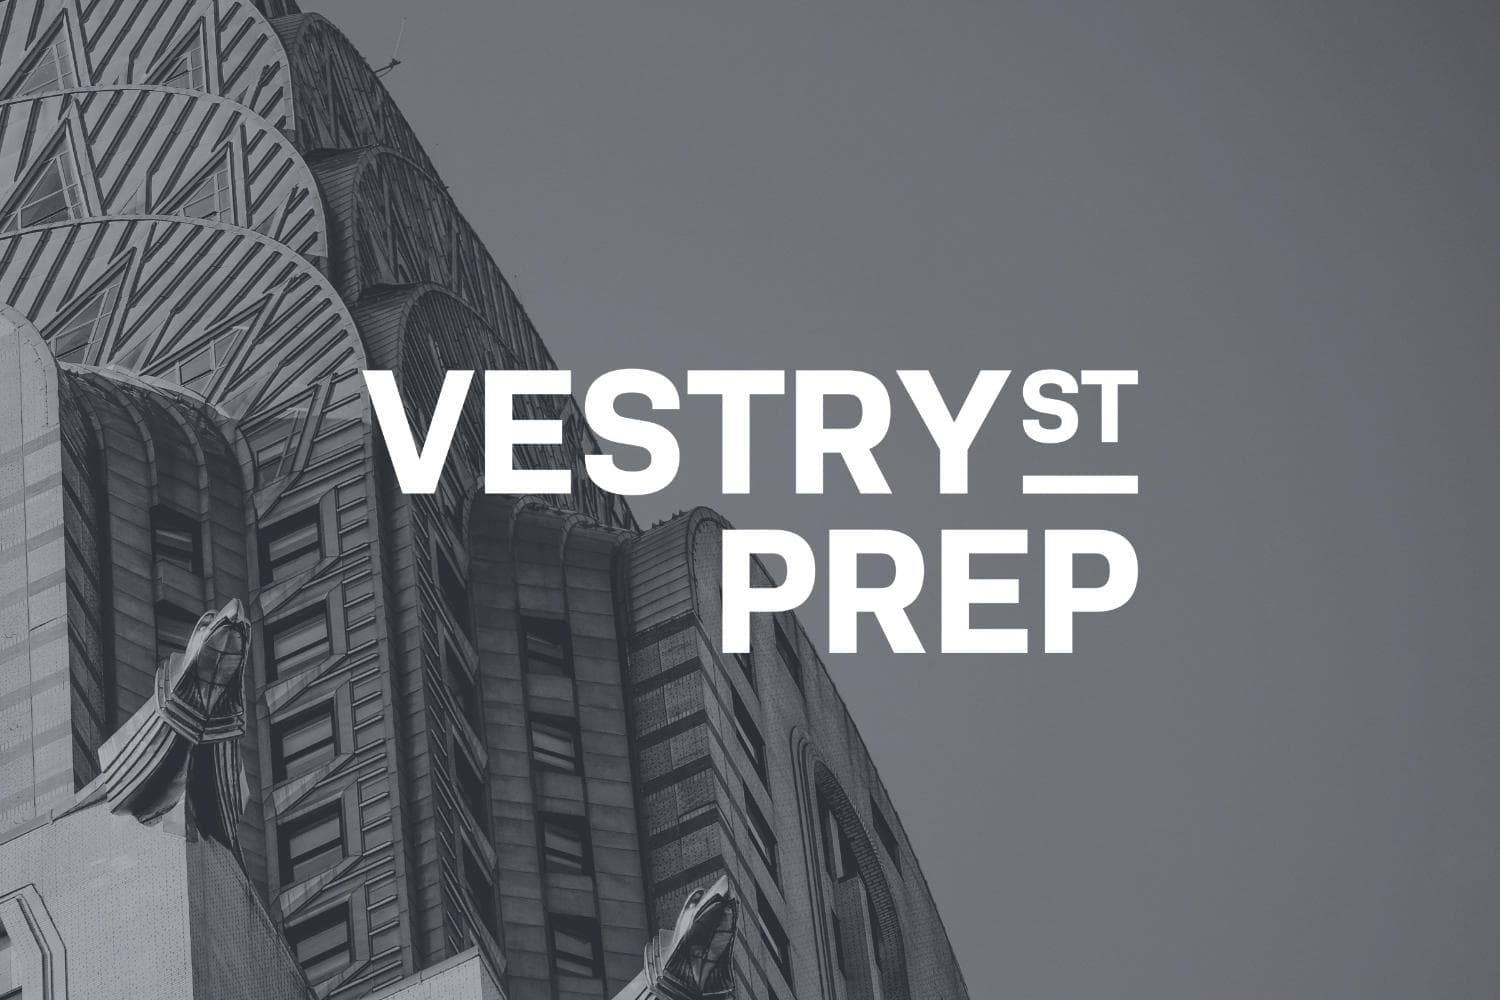 Vestry Street Prep logo over a monochrome photo of the Chrysler Building.